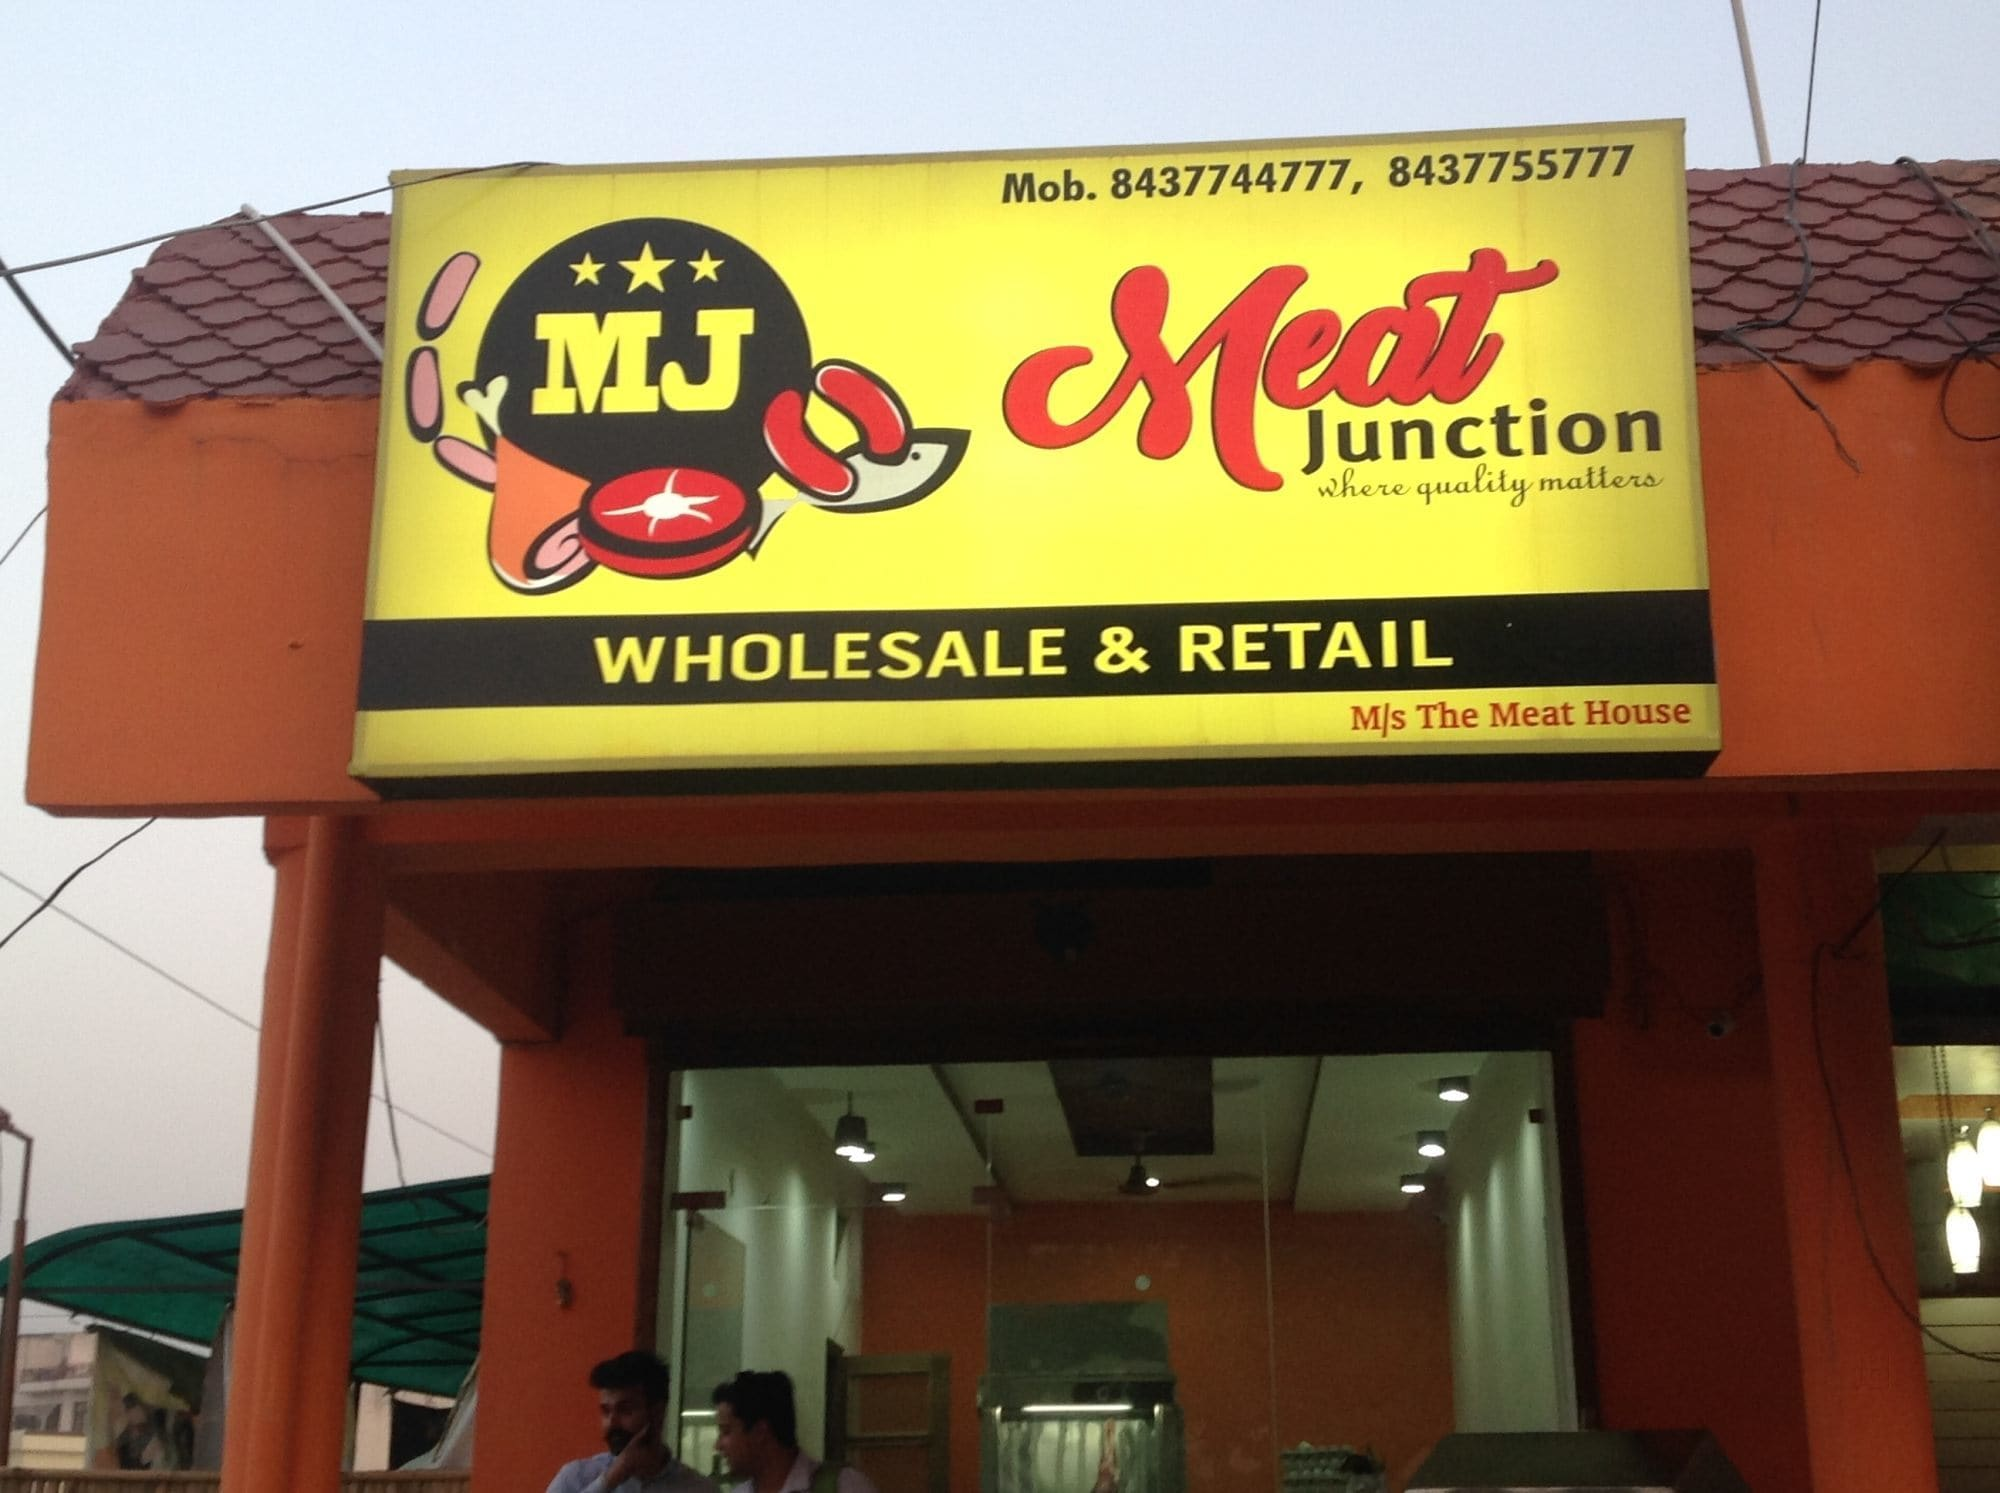 Top Quail Meat Distributors in Chandigarh - Justdial